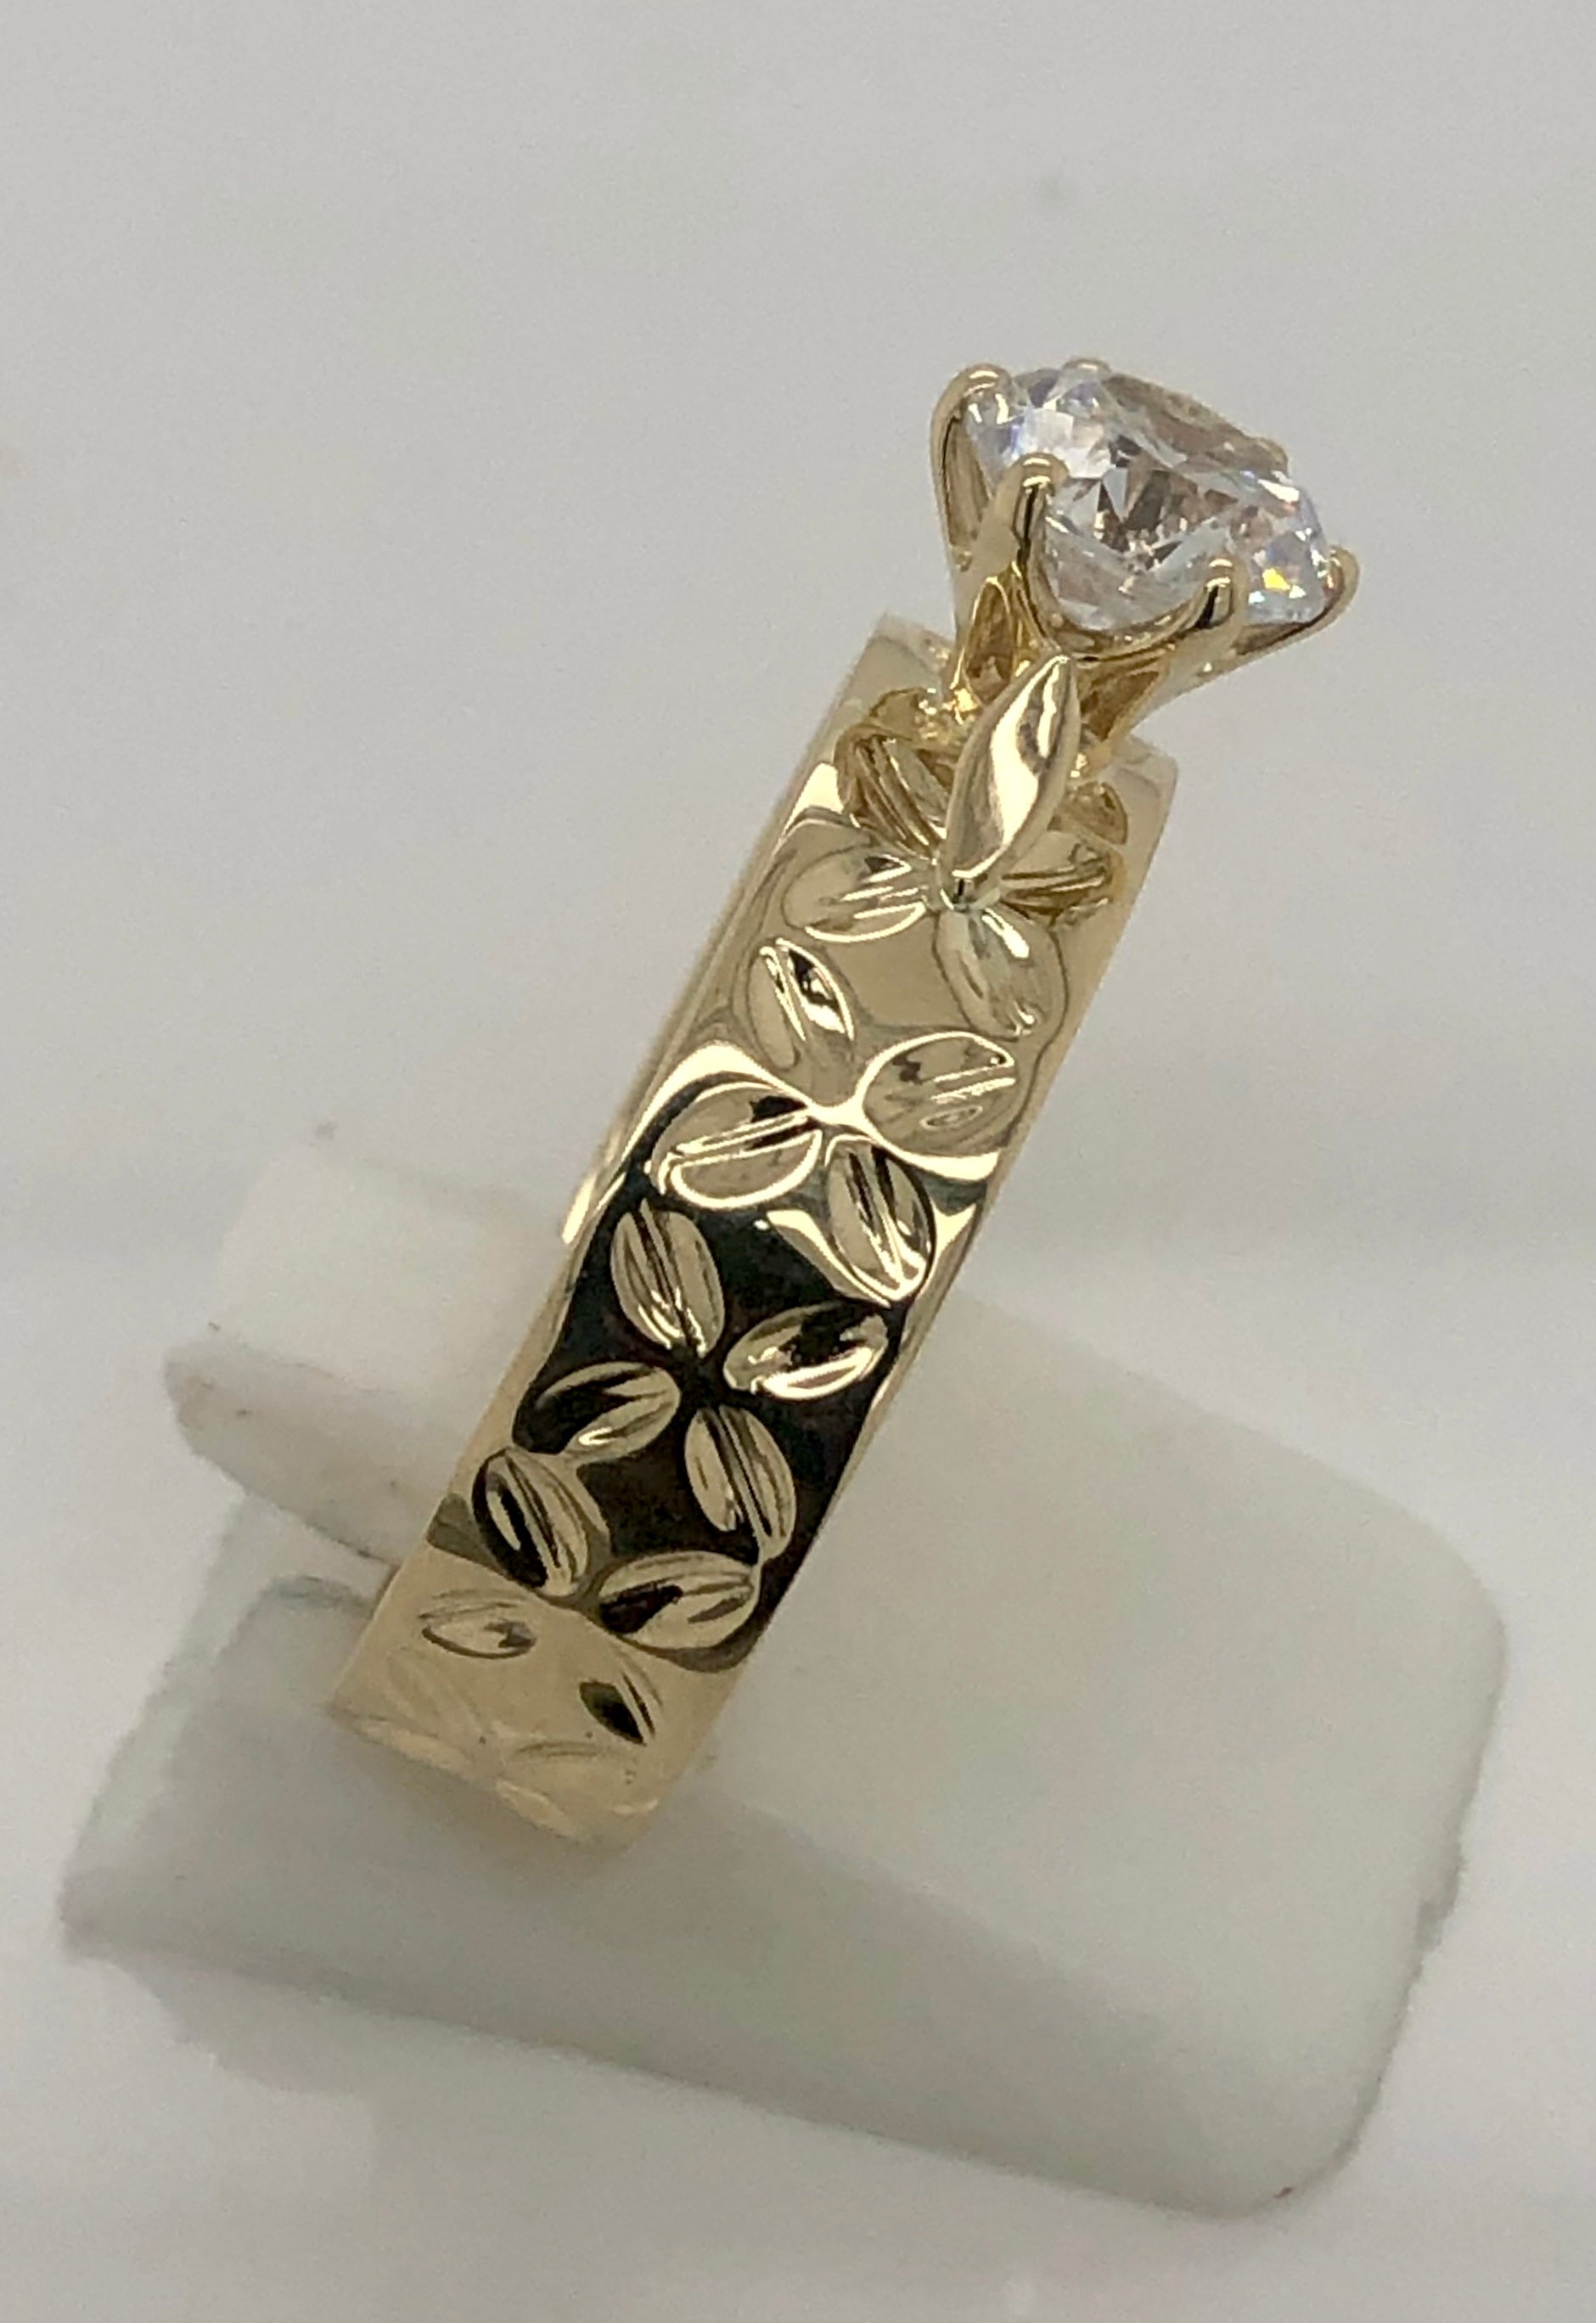 9ct Gold Ladies Cubic Zirconia Ring 007